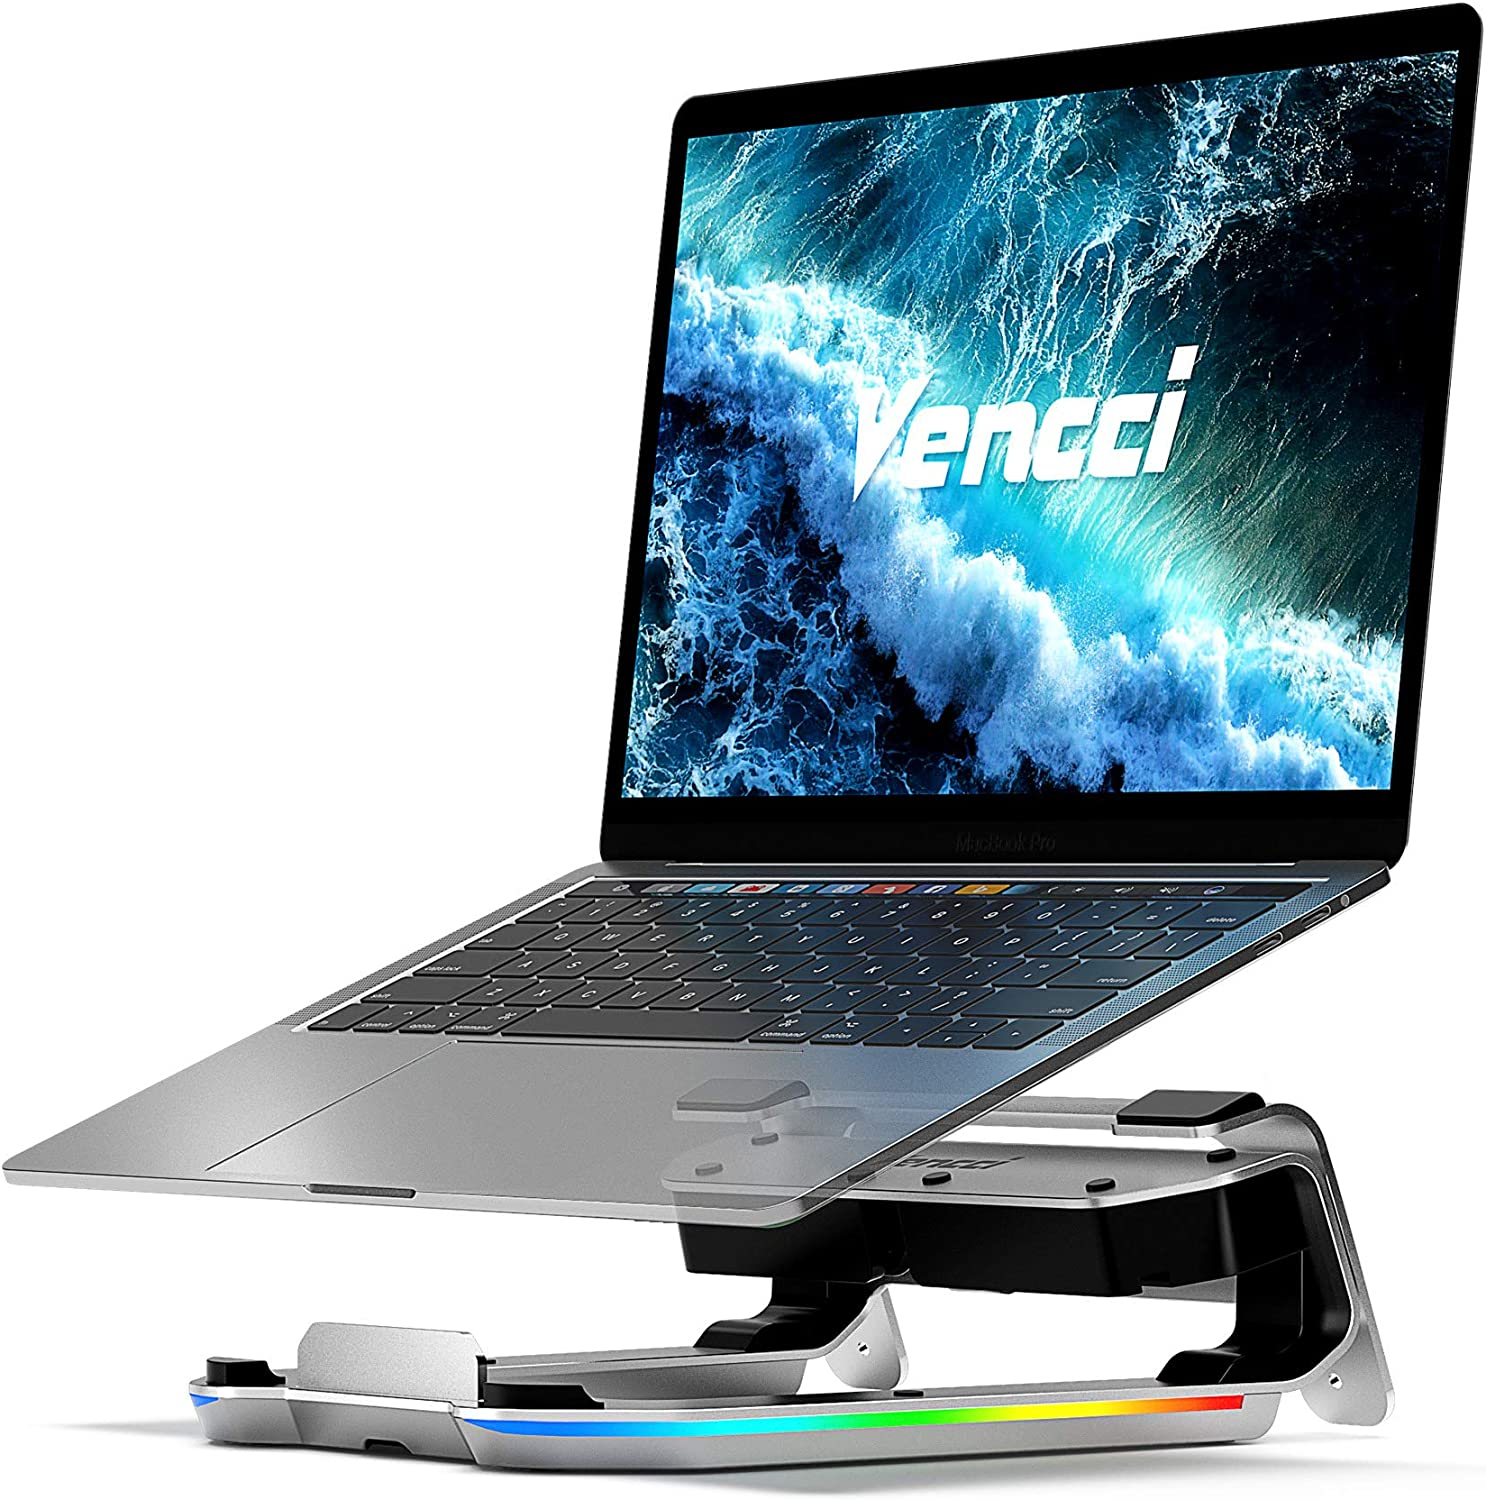 Vencci Laptop Stand for Desk, Ergonomic Aluminum Computer Laptop Riser Holder with 8-in-1 USB C Hub | RGB Light | Adjustable Height, Compatible with MacBook Pro Air HP XPS and More Type C Devices